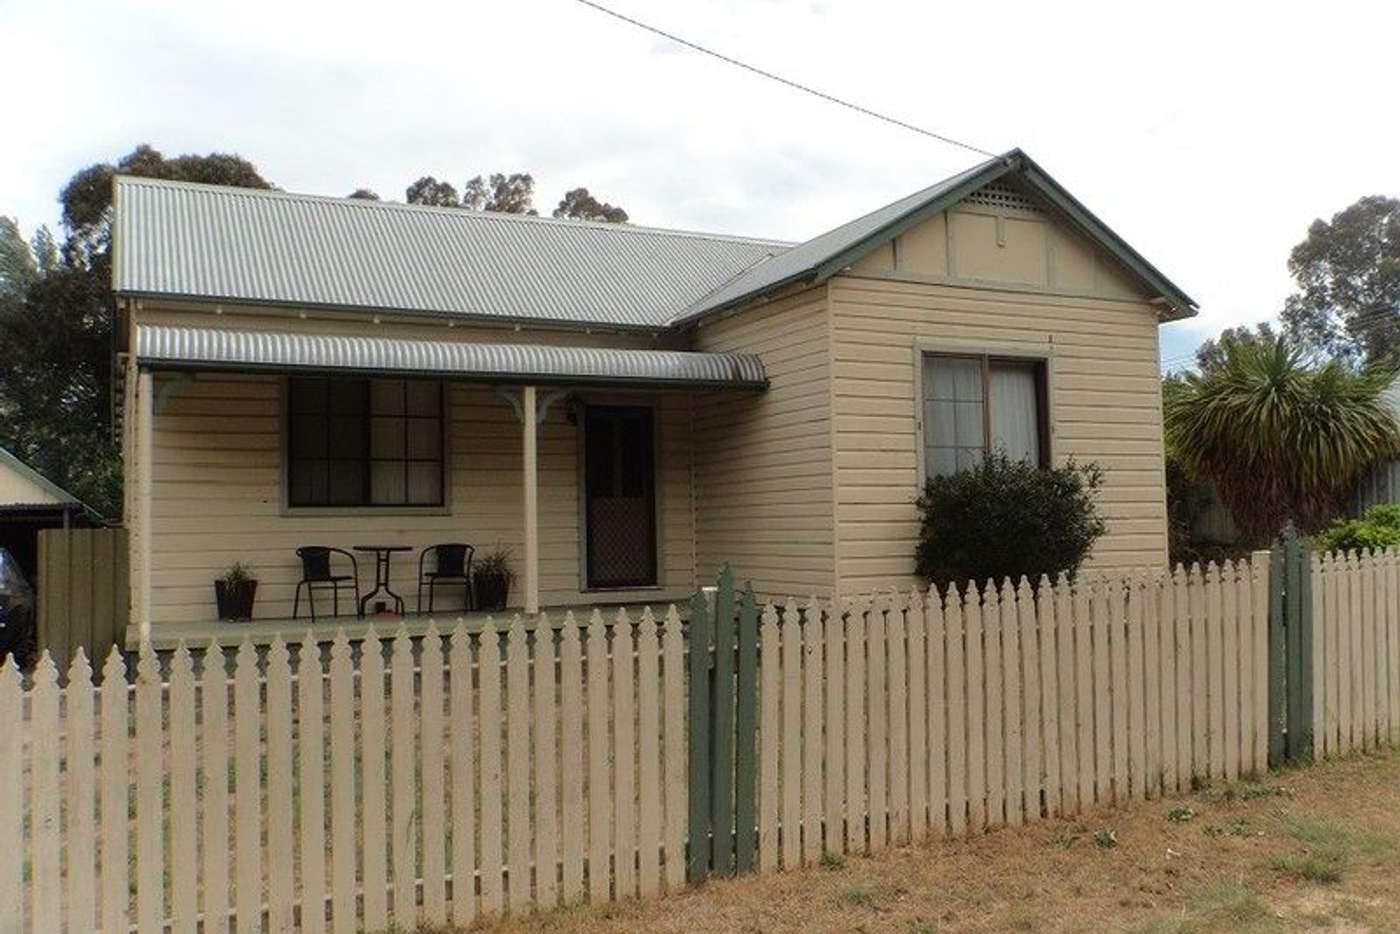 Main view of Homely house listing, 192 Addison Street, Goulburn NSW 2580